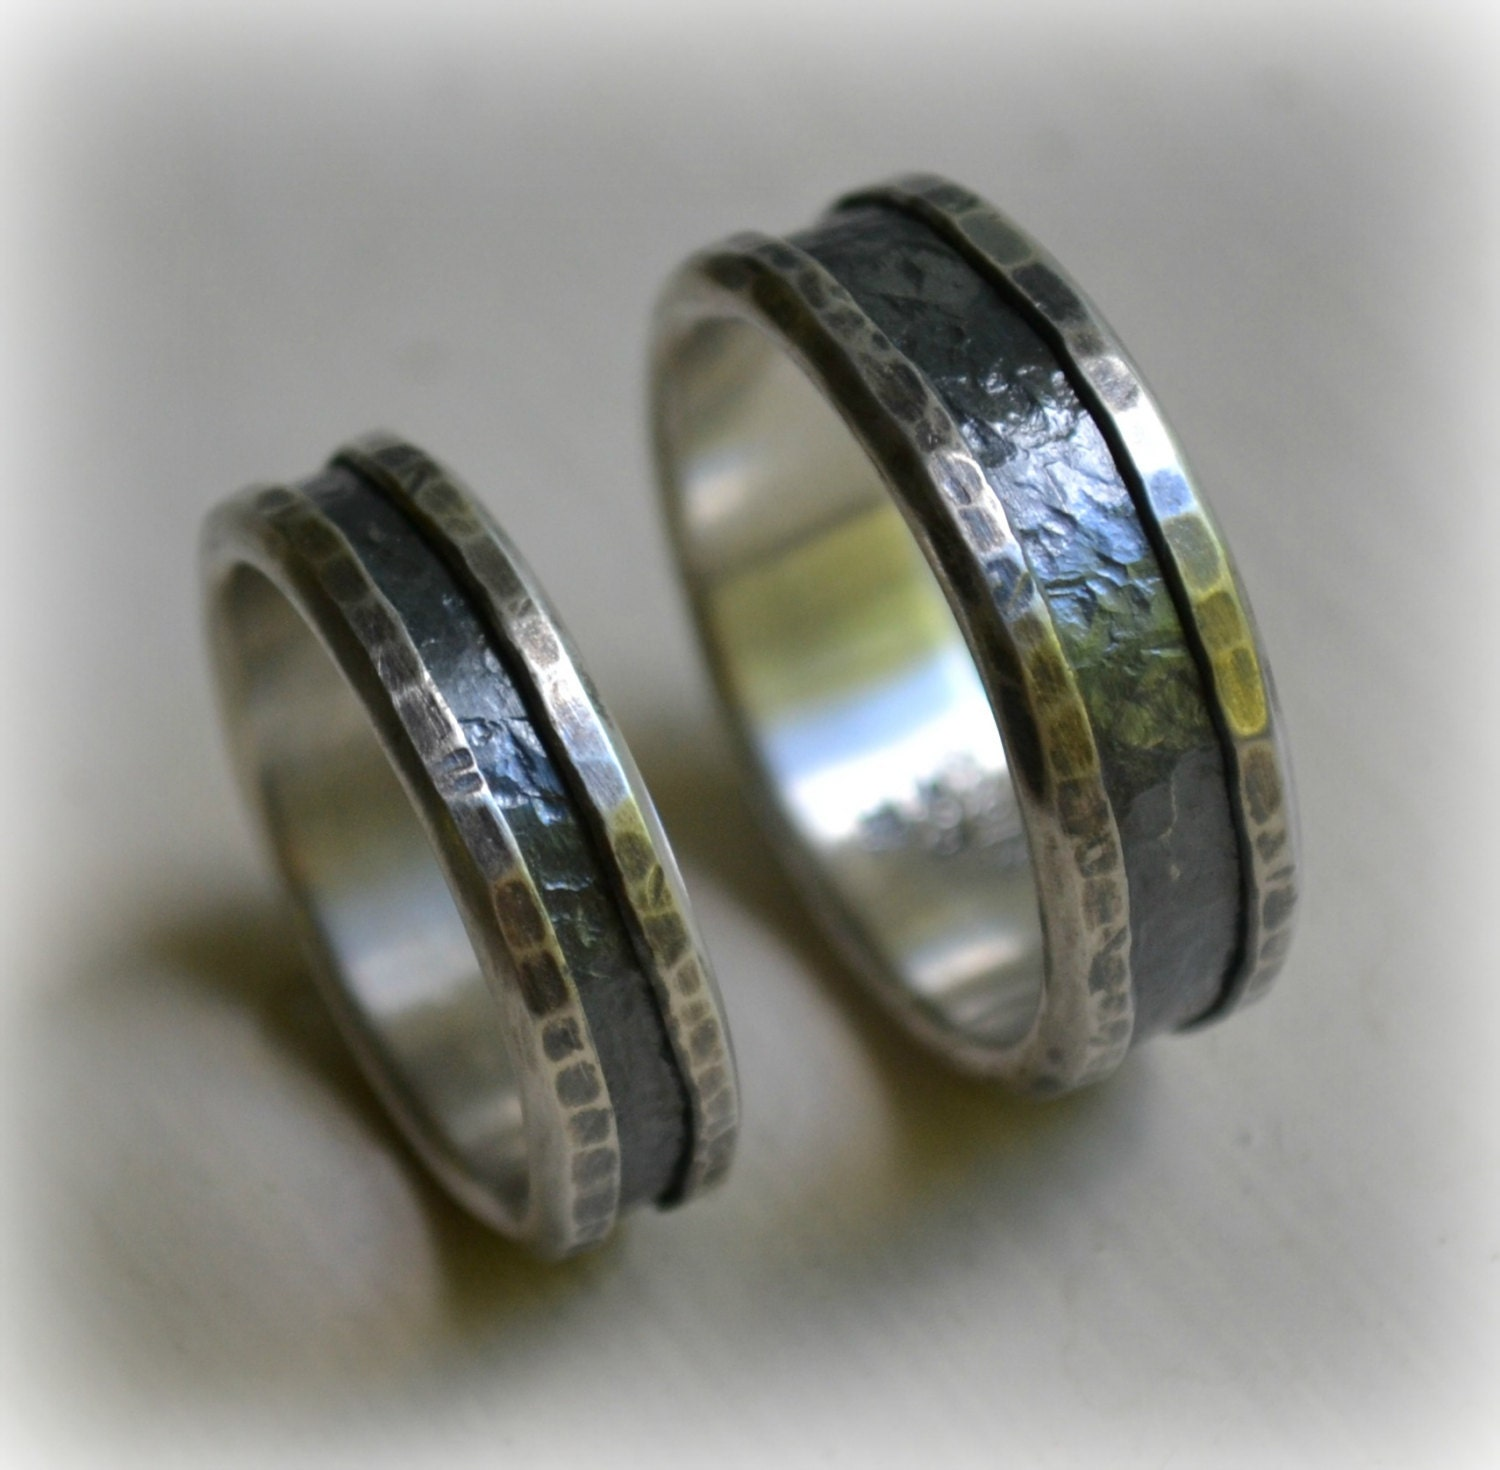 Rustic Silver Wedding Ring Set Handmade Artisan Designed